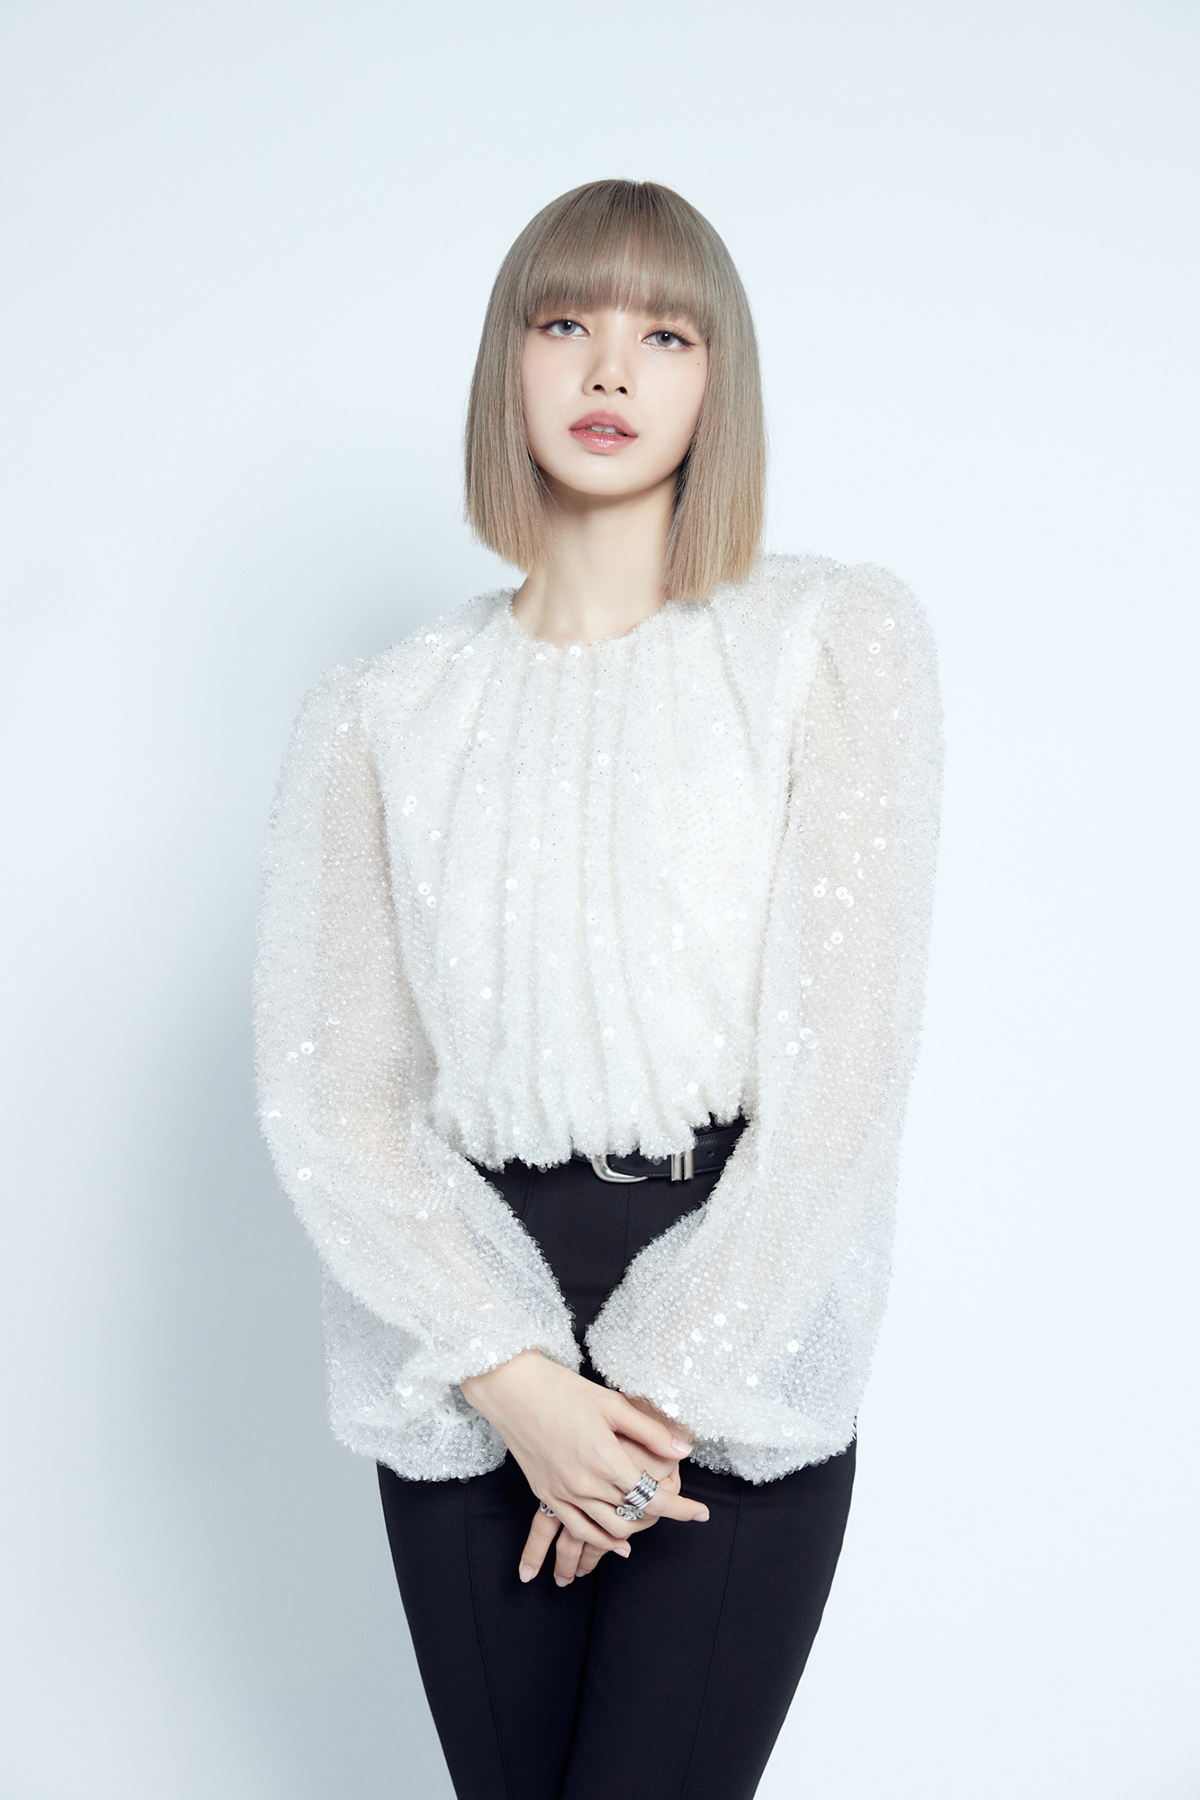 Lisa poses during an online press conference Friday. (YG Entertainment)